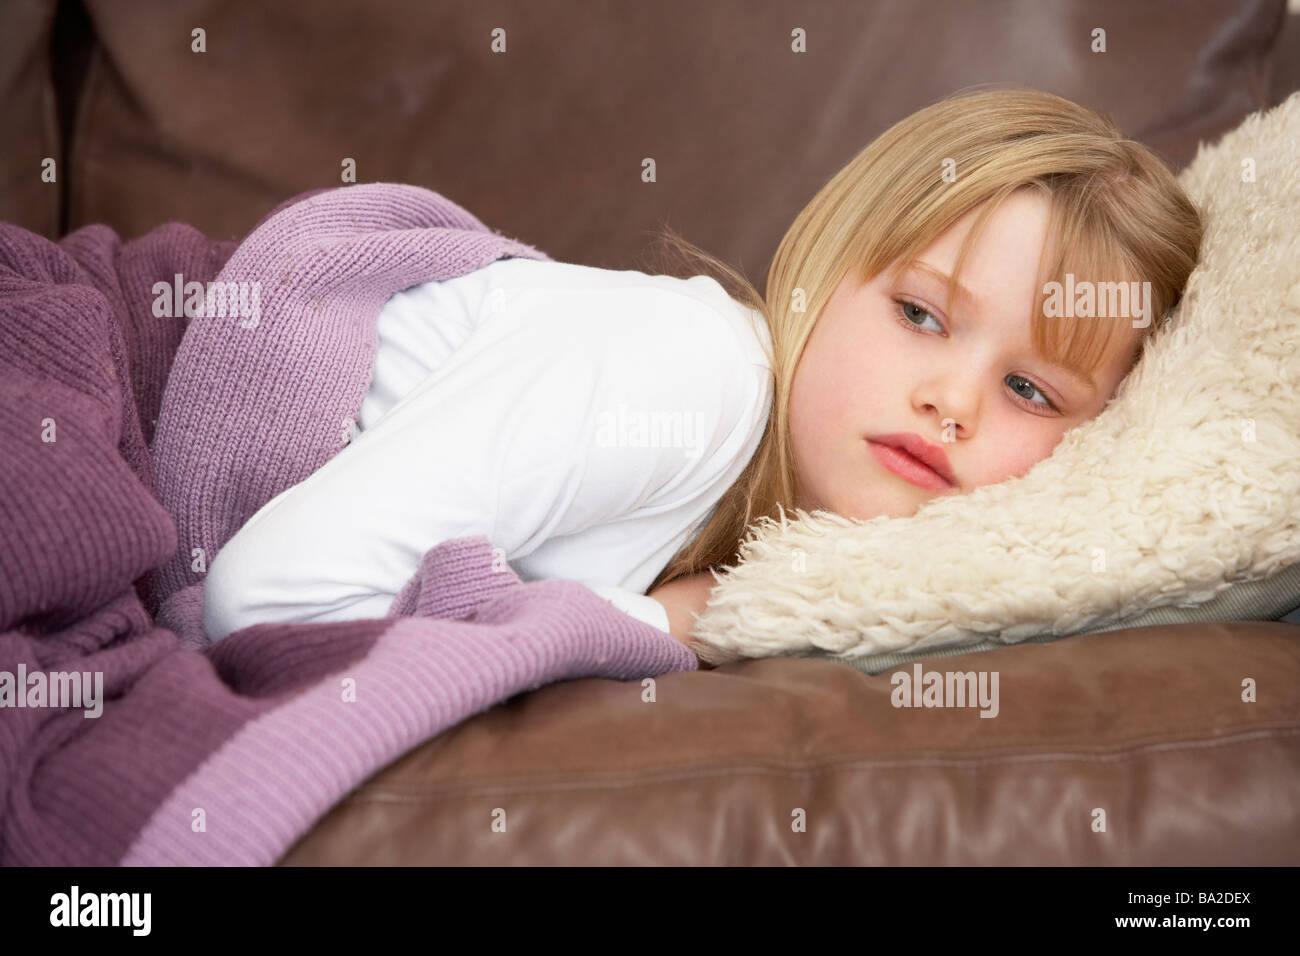 Young Girl Unwell Lying On Sofa - Stock Image